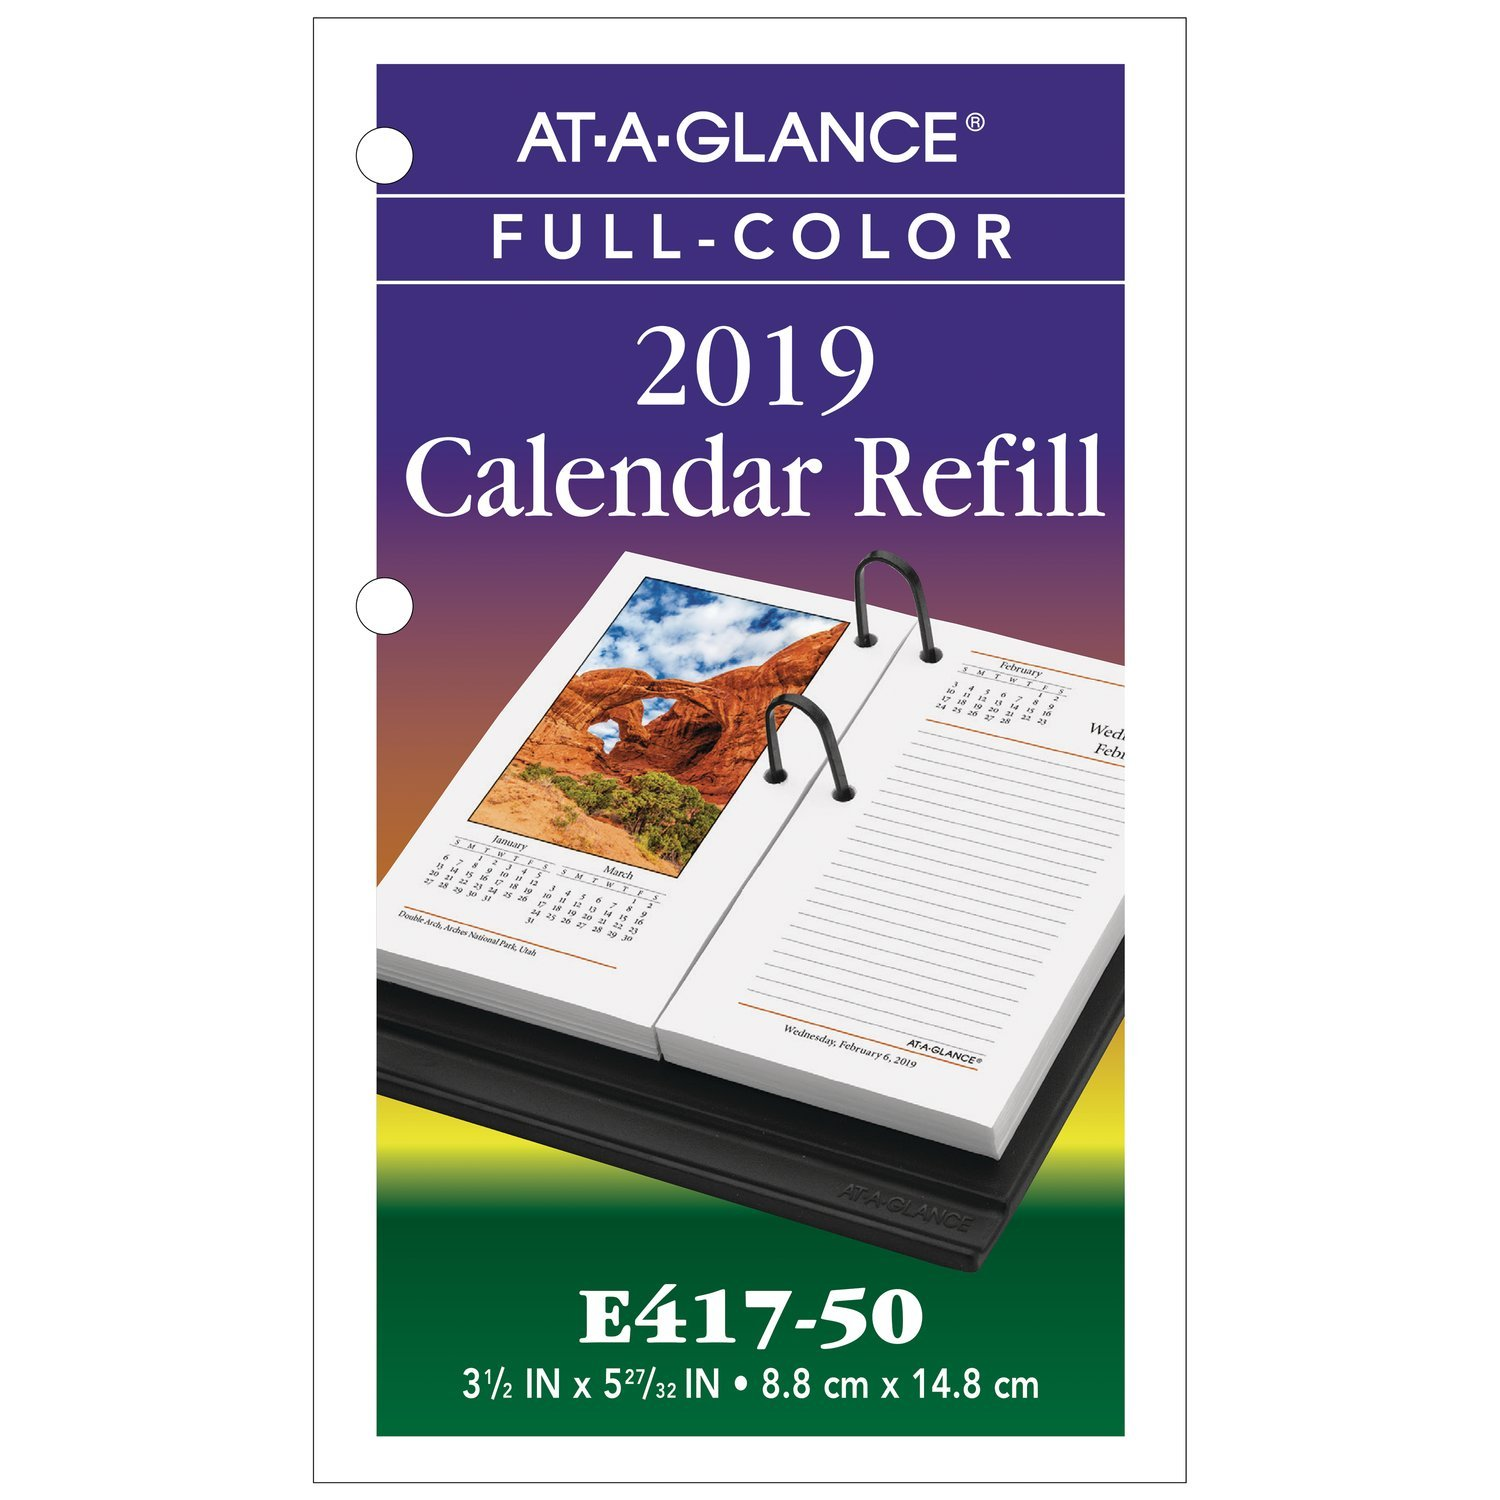 AT-A-GLANCE 2019 Desk Calendar Refill, 3-1/2'' x 6'', Photographic (E41750) by AT-A-GLANCE